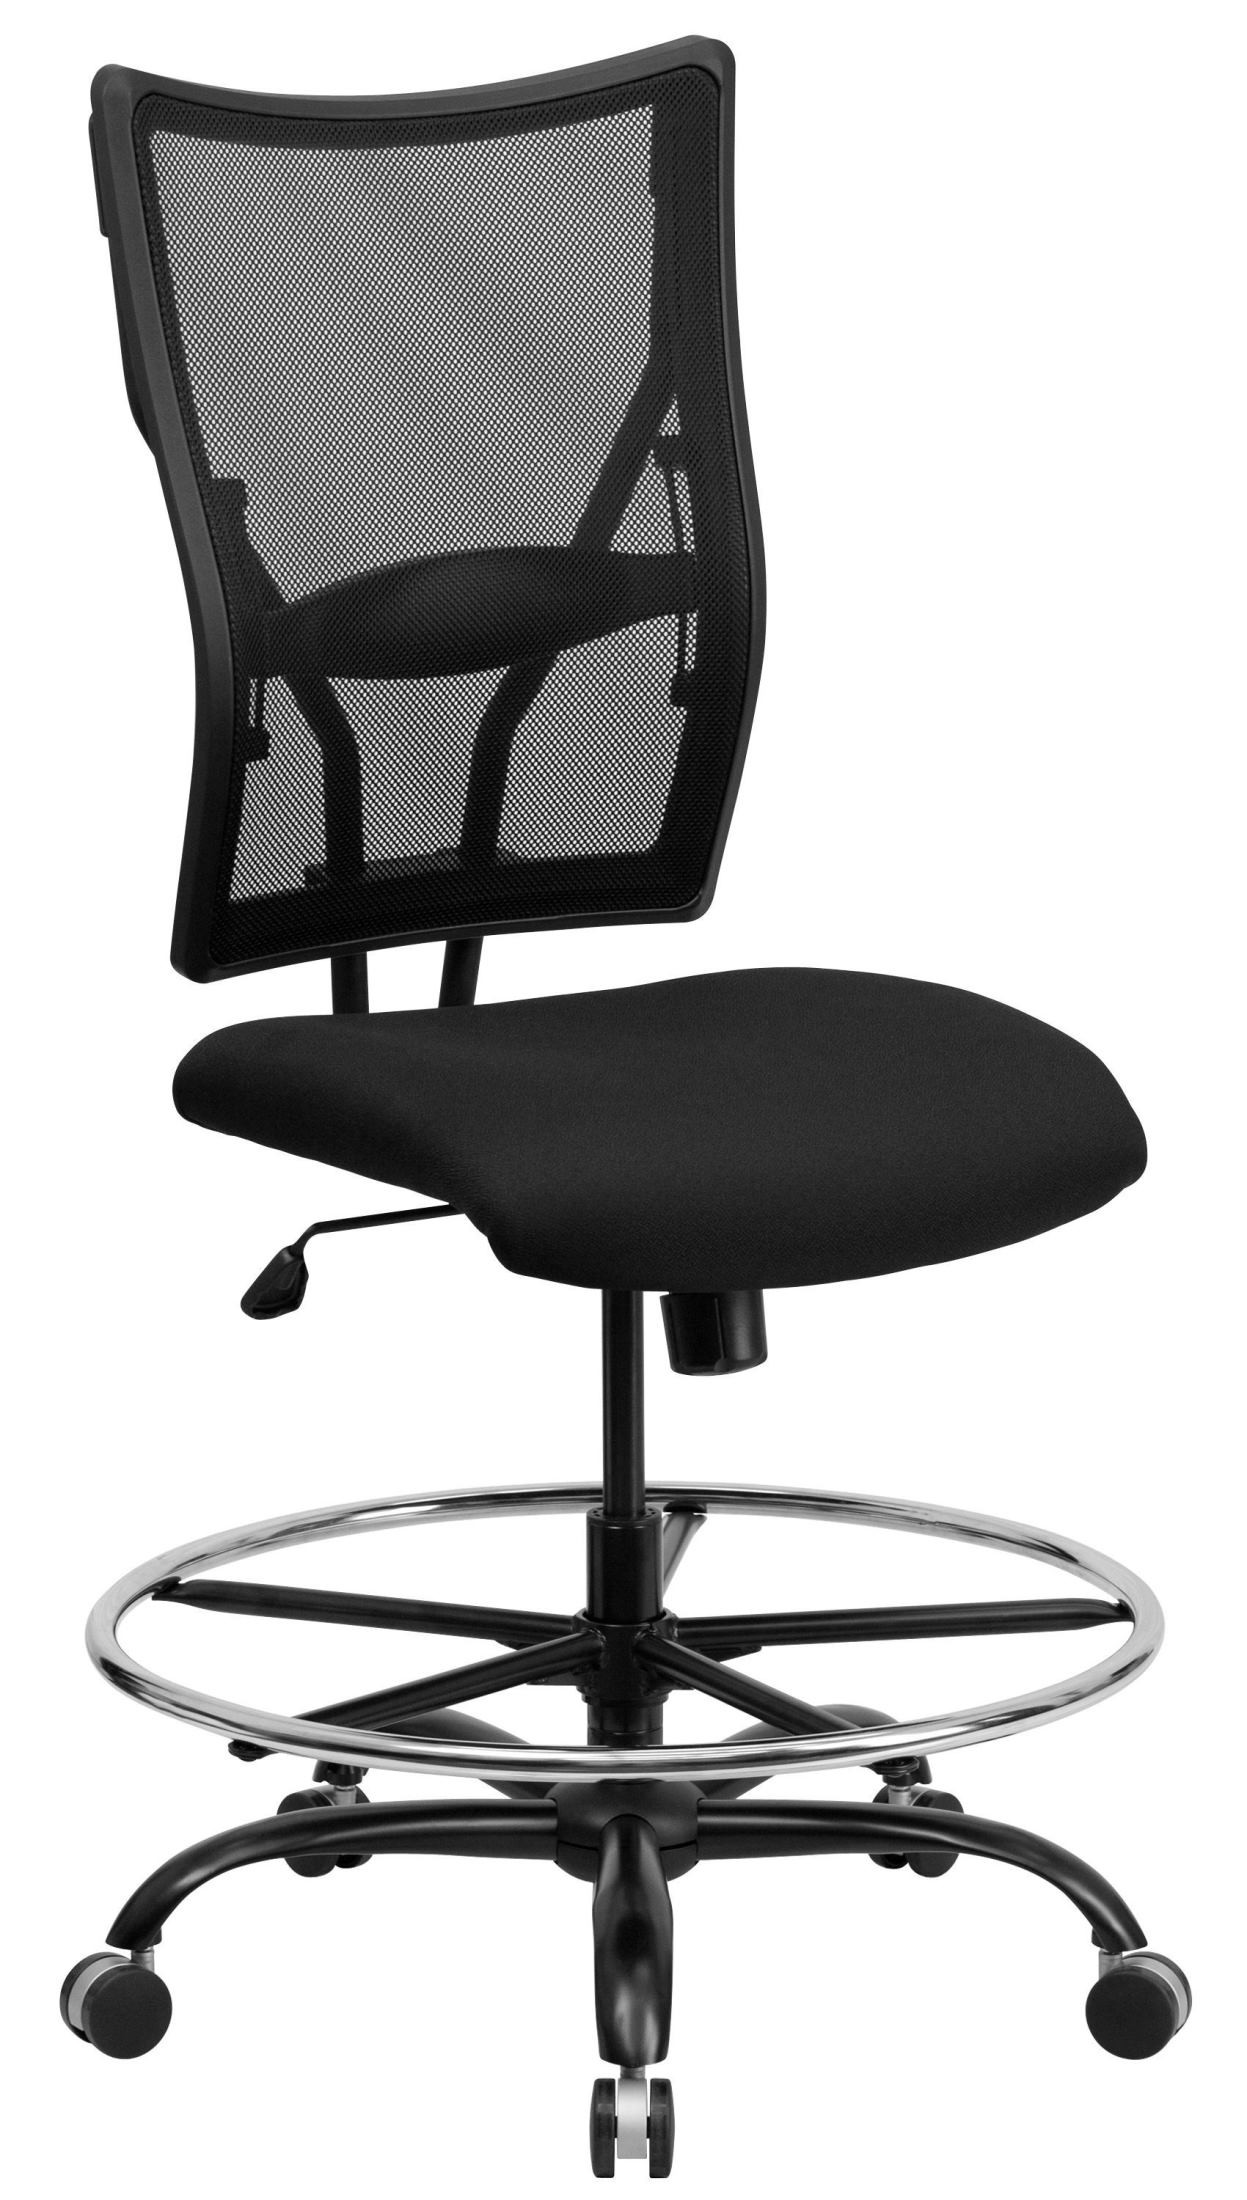 Tall Drafting Chair 10001479 Hercules Big And Tall Black Drafting Stool From